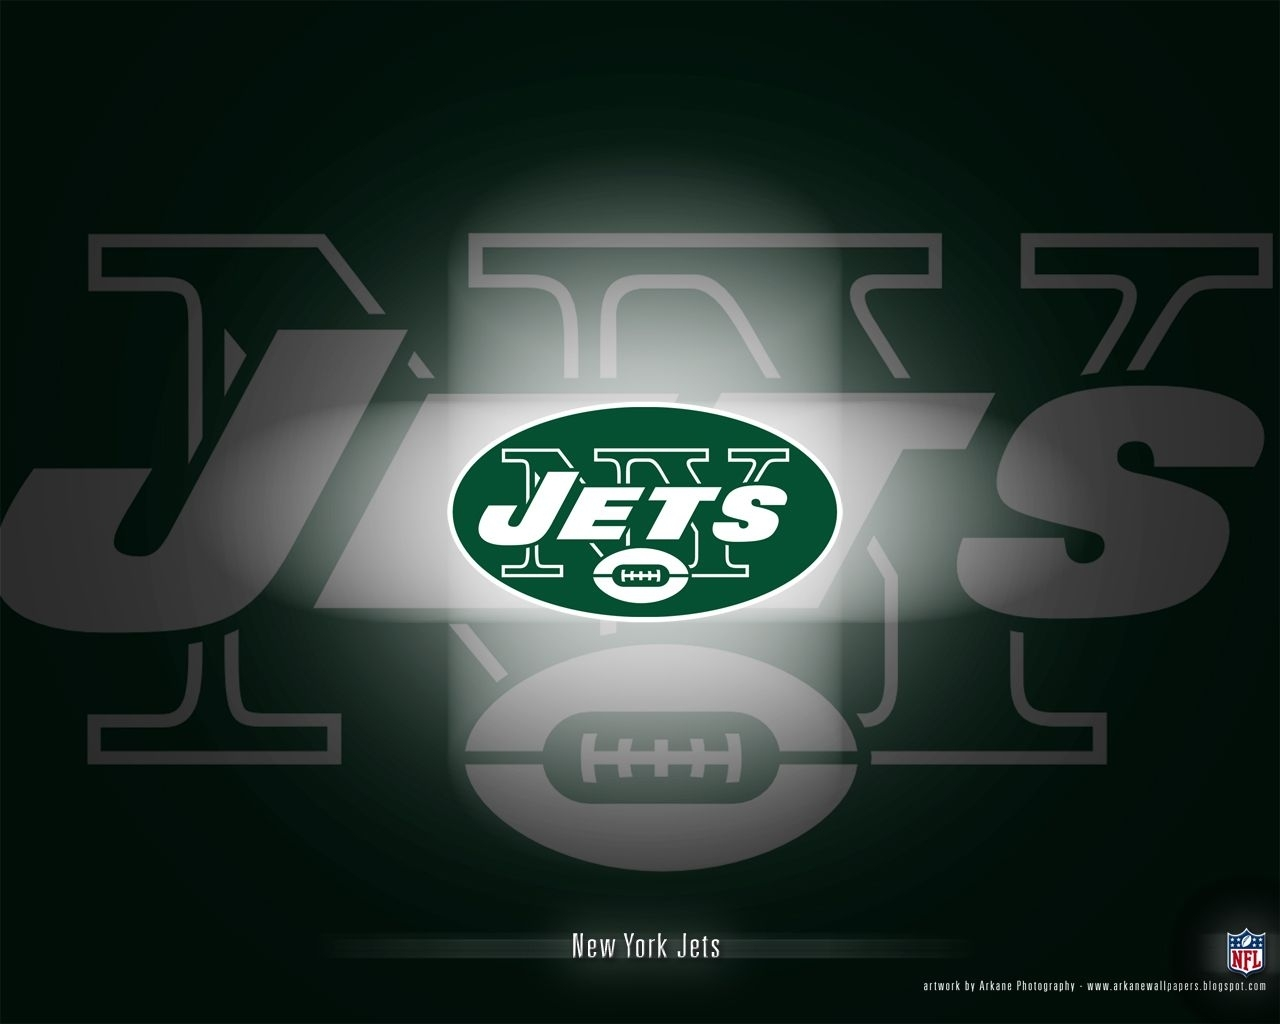 new your jets | arkane nfl wallpapers: new york jets - vol. 1